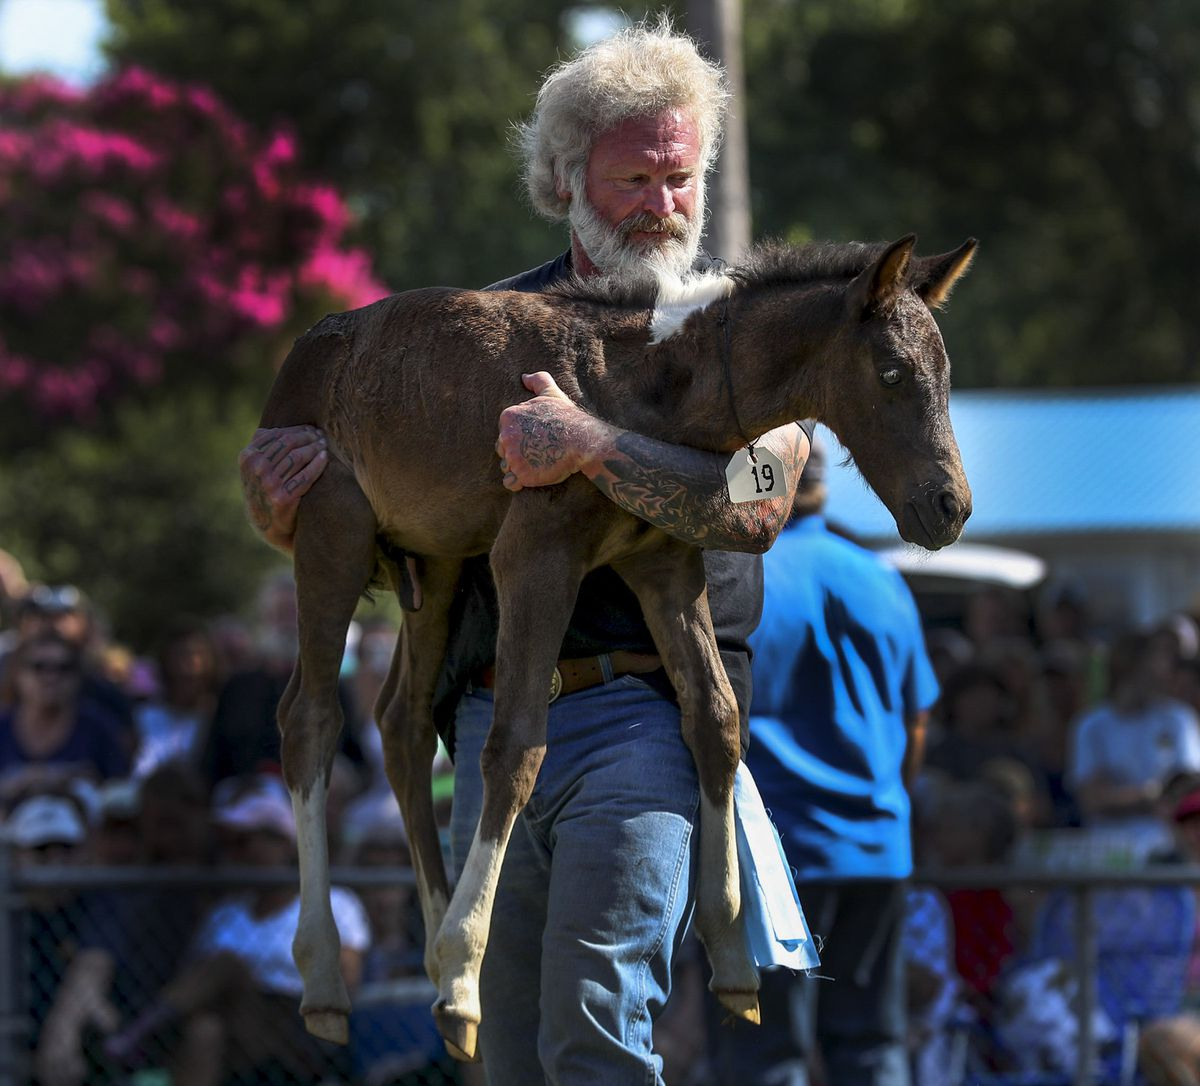 Volunteer Salt Water Cowboy Ellis Savage carries a wild pony foal around the auction ring during Pony Penning at the fairgrounds in Chincoteague, Va., on Thursday, July 25, 2019. Jessica Stewart bought the 6-week-old black foal for $10,000.